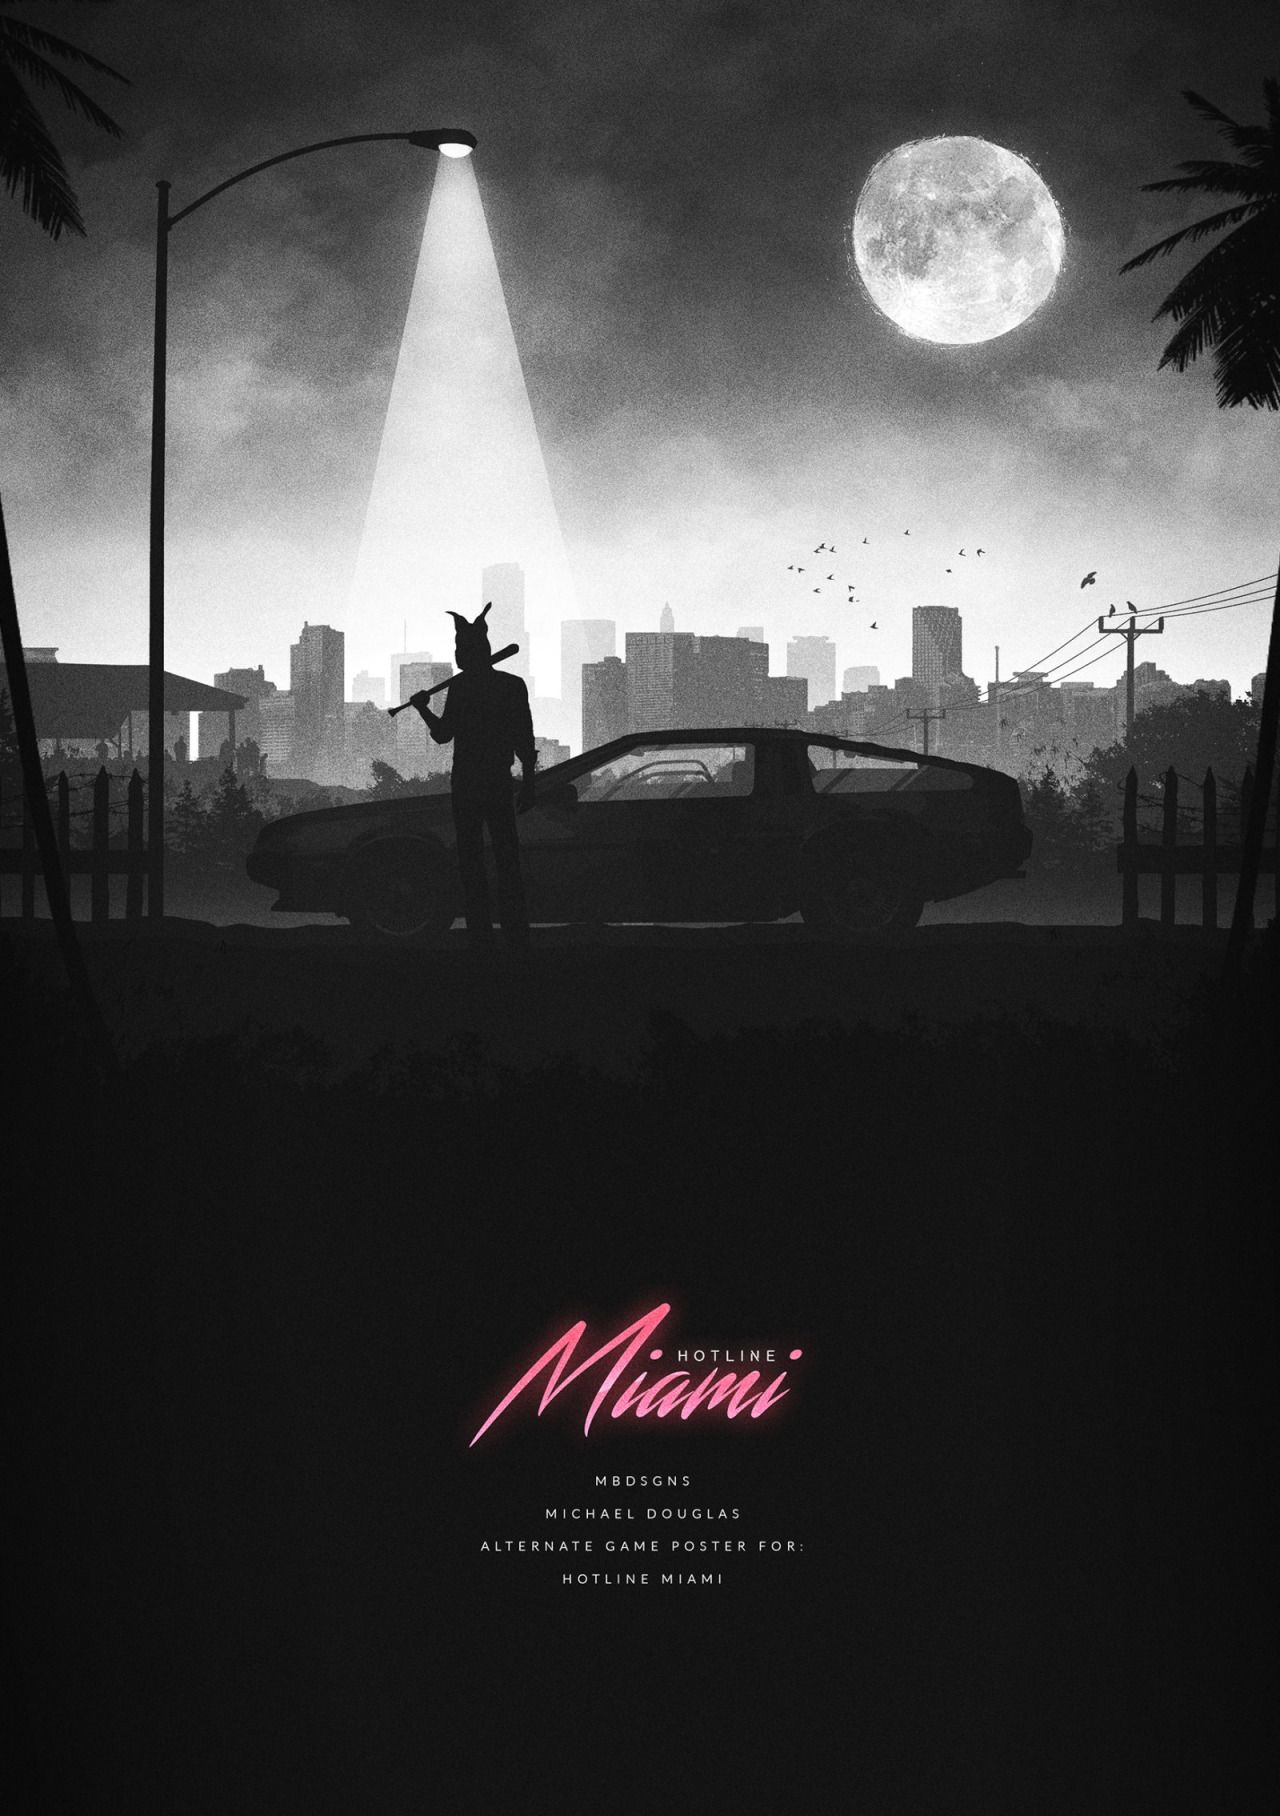 Hotline miami posters created by michael douglas you can check out more of his